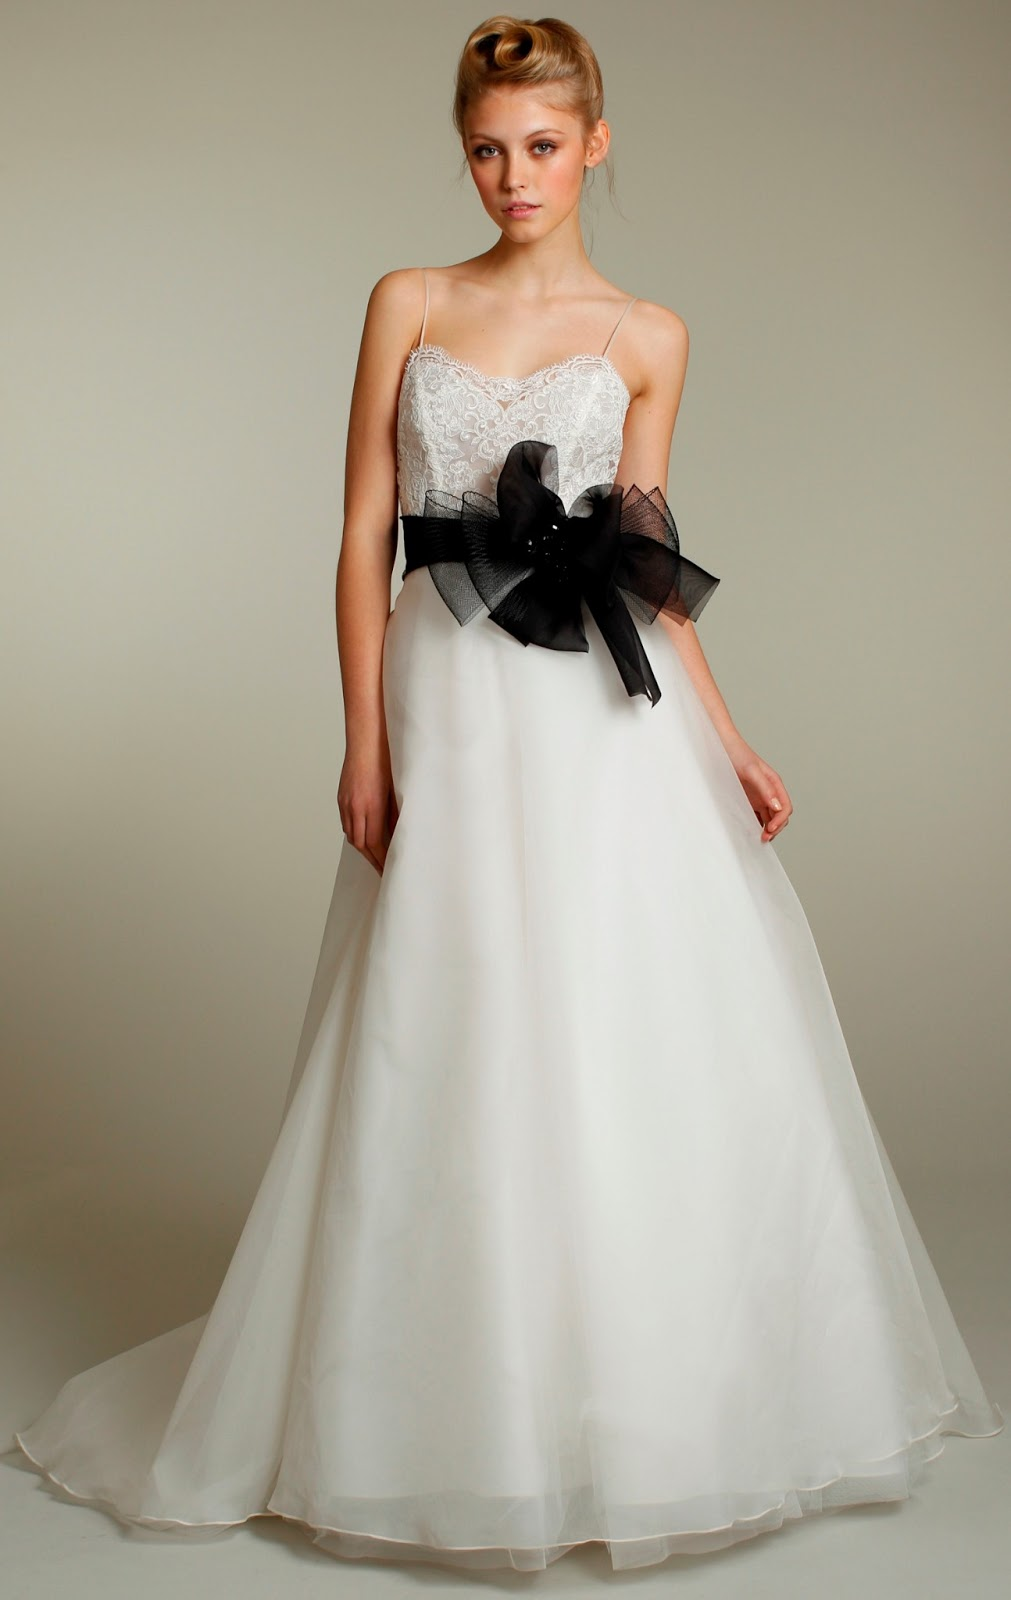 Choose your fashion style wedding dresses with black sashes for Wedding dress belt sash